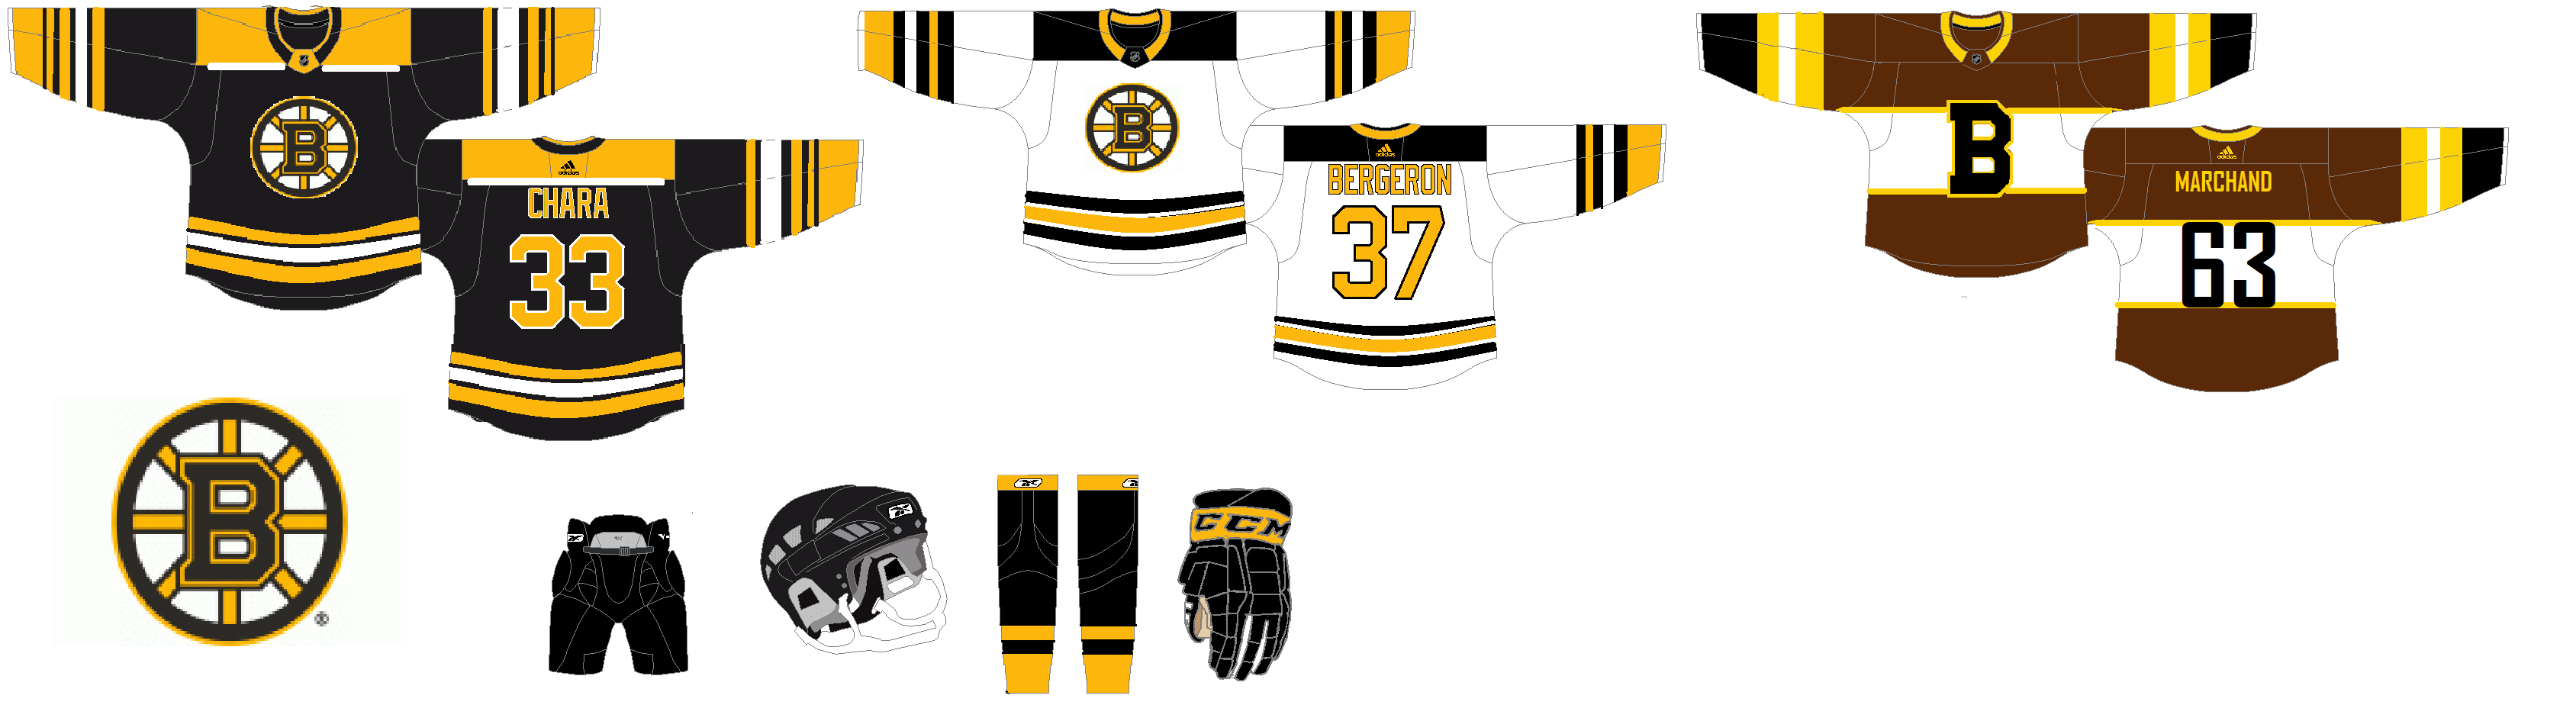 https://i.ibb.co/VWWbLVs/Bruins.png